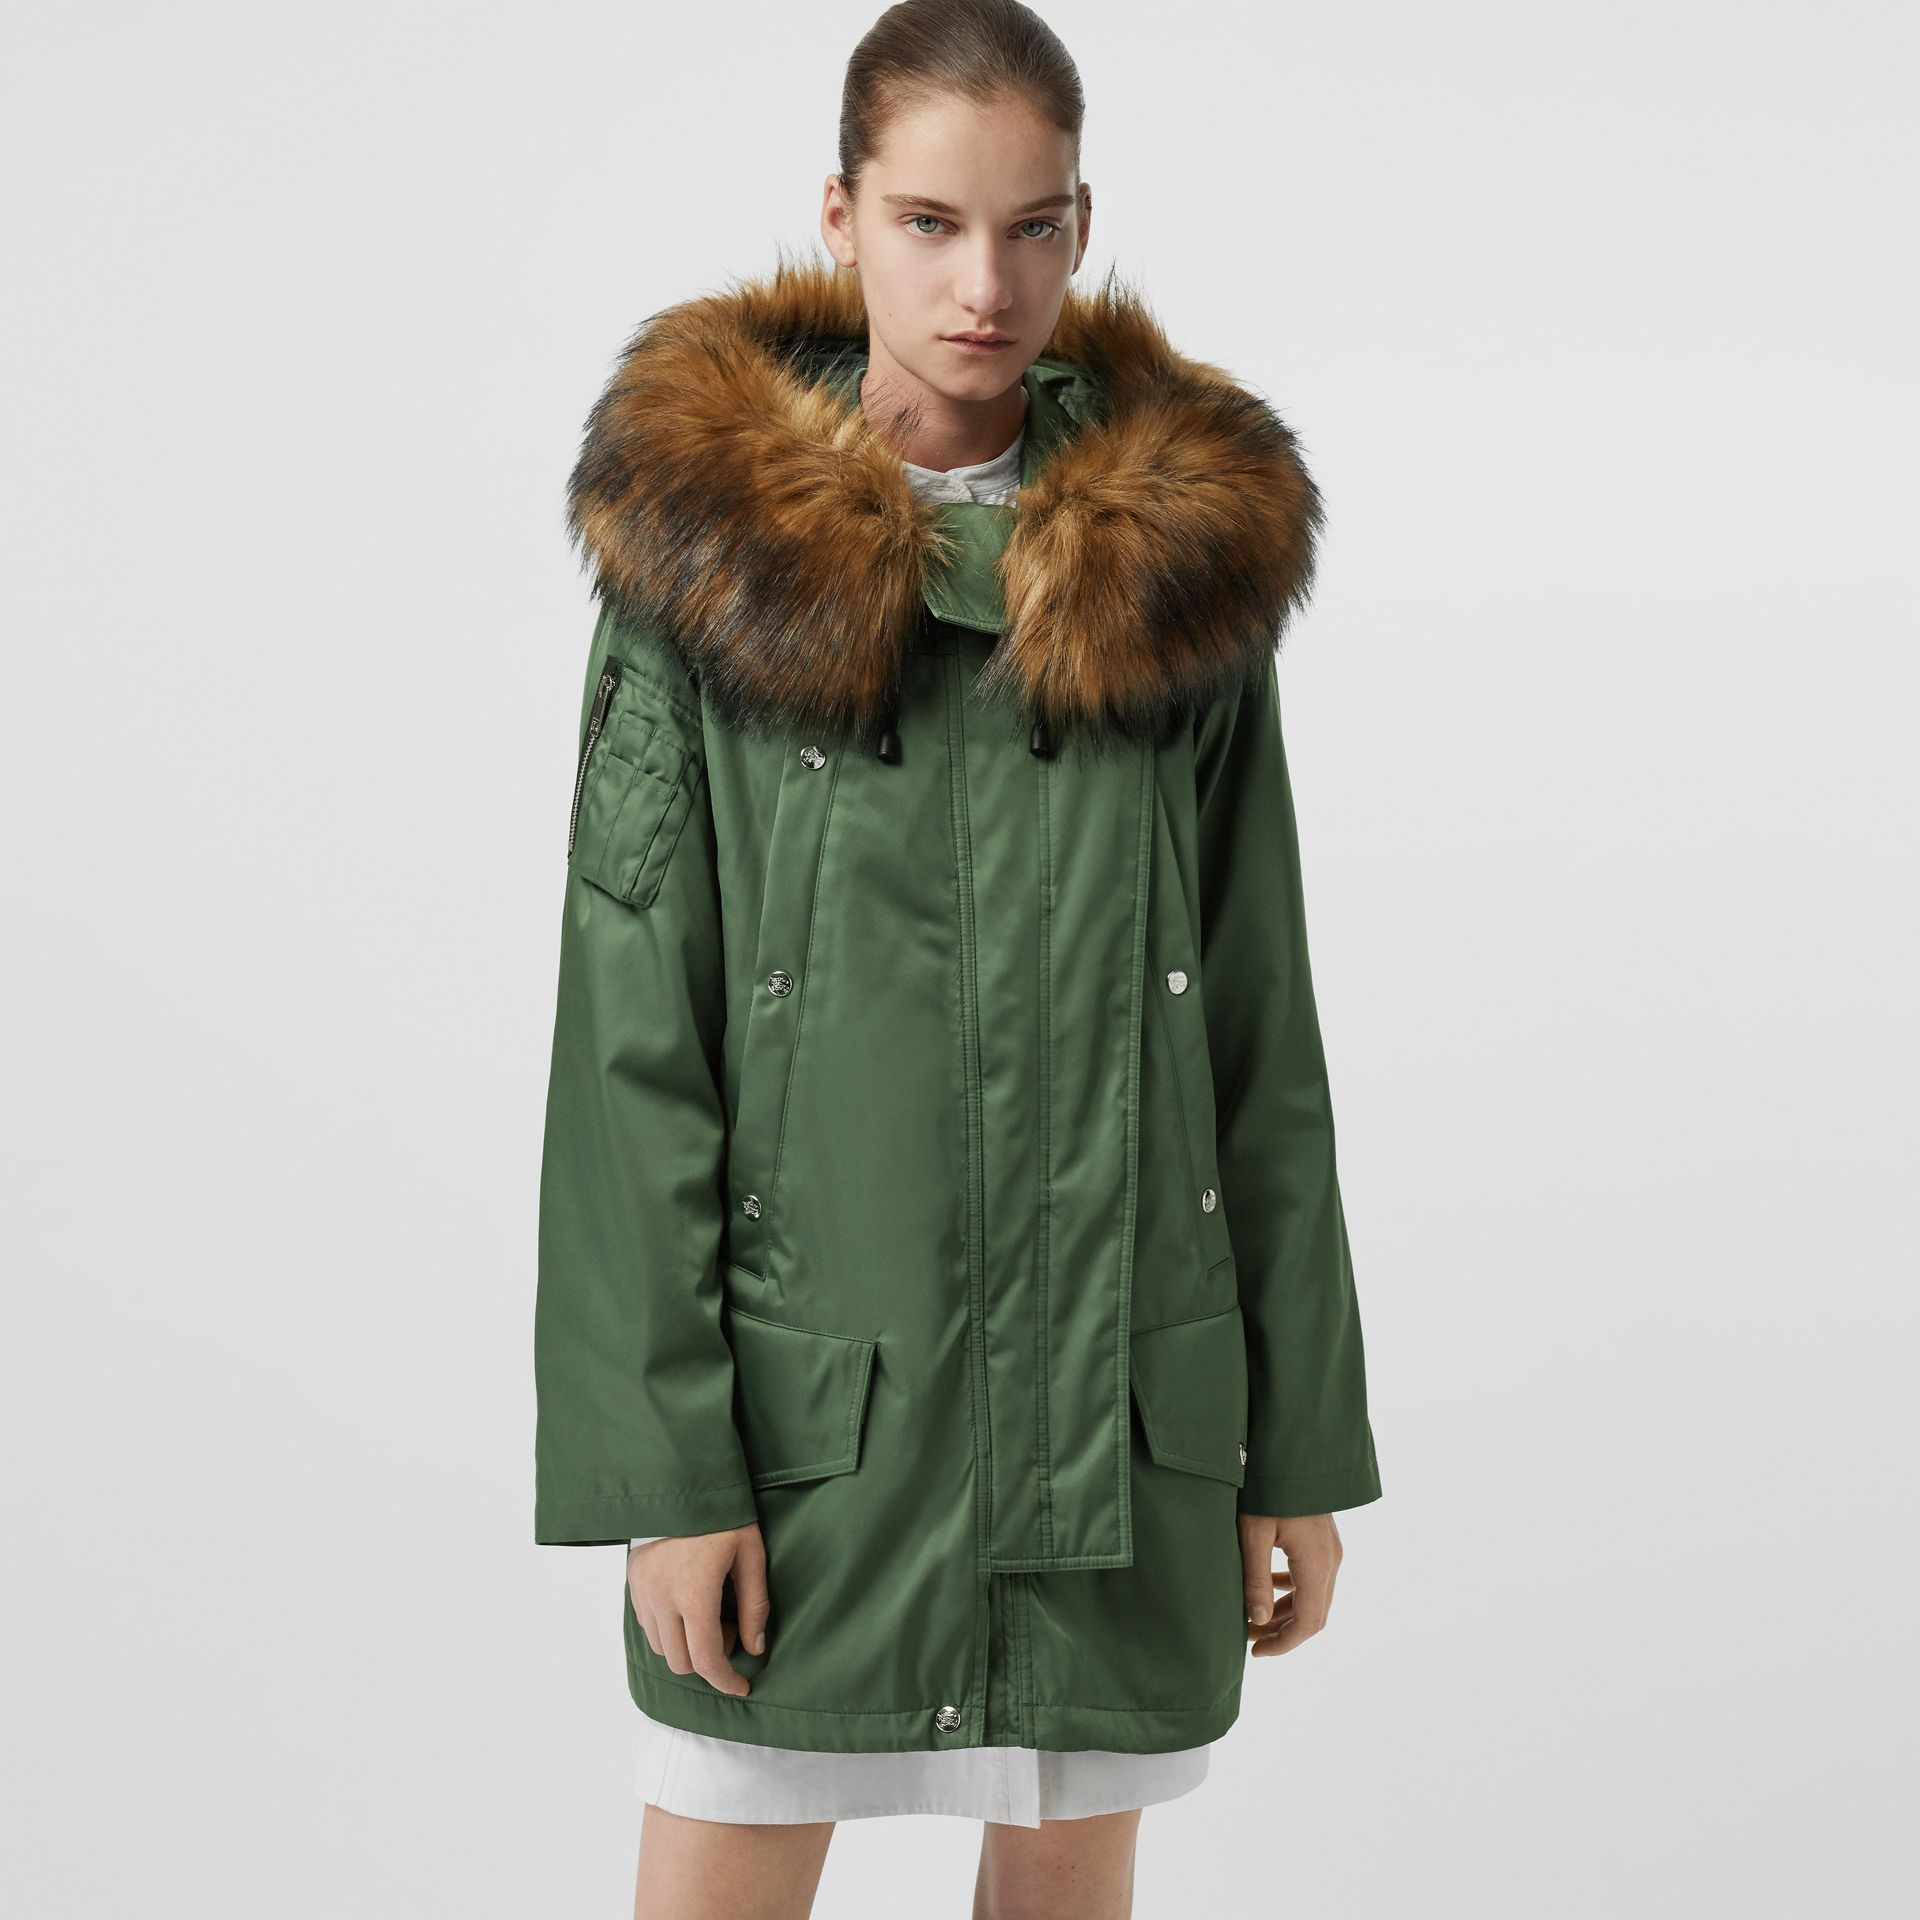 Faux Fur Trim Parka with Detachable Warmer in Grass Green - Women | Burberry United States - gallery image 4